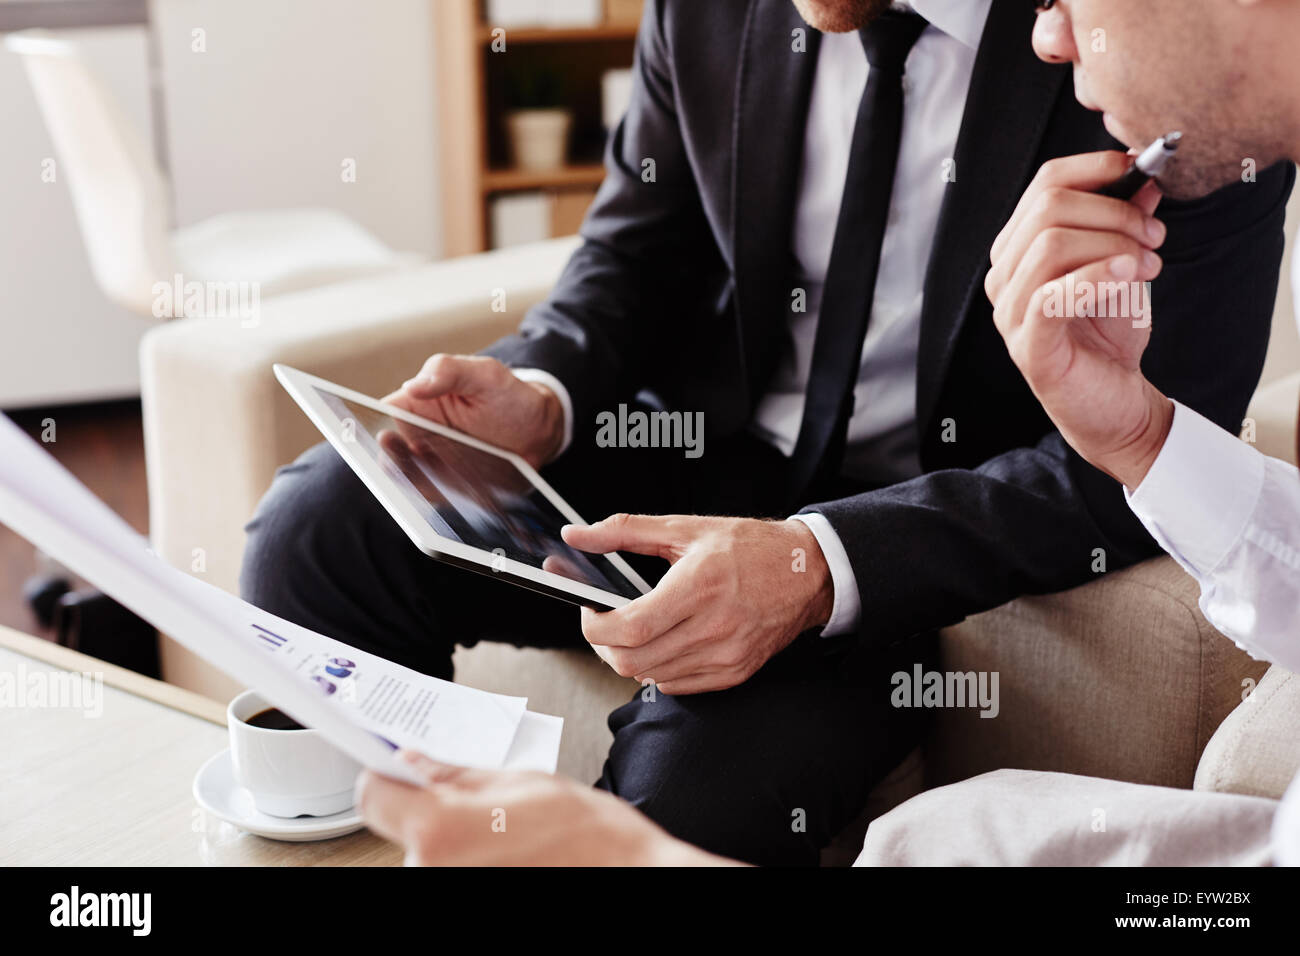 Male employees using touchpad at meeting - Stock Image